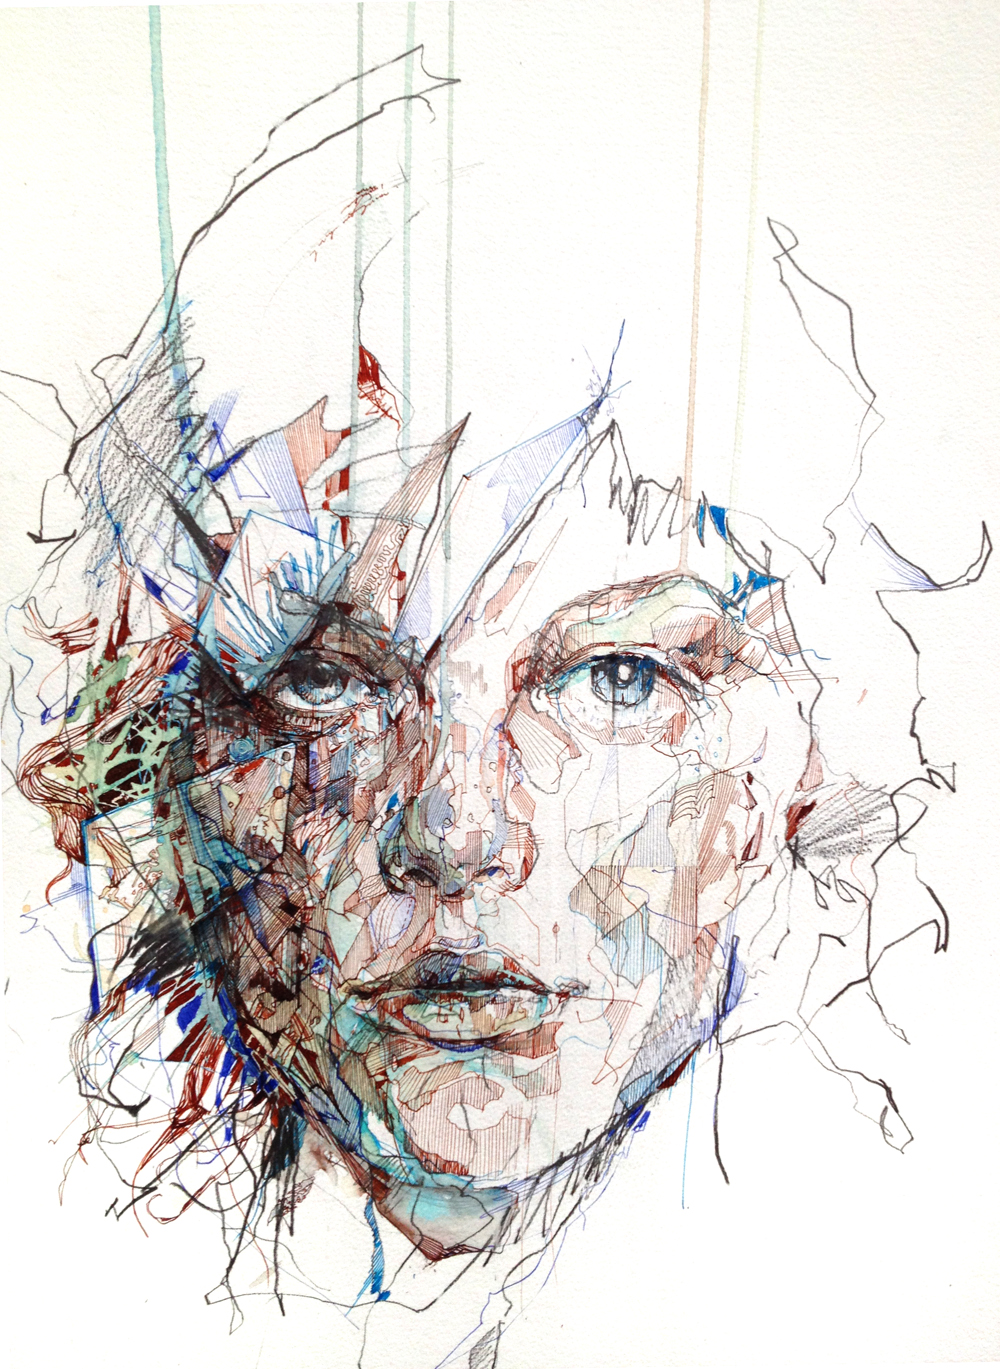 Carne Griffiths - London, UK artist